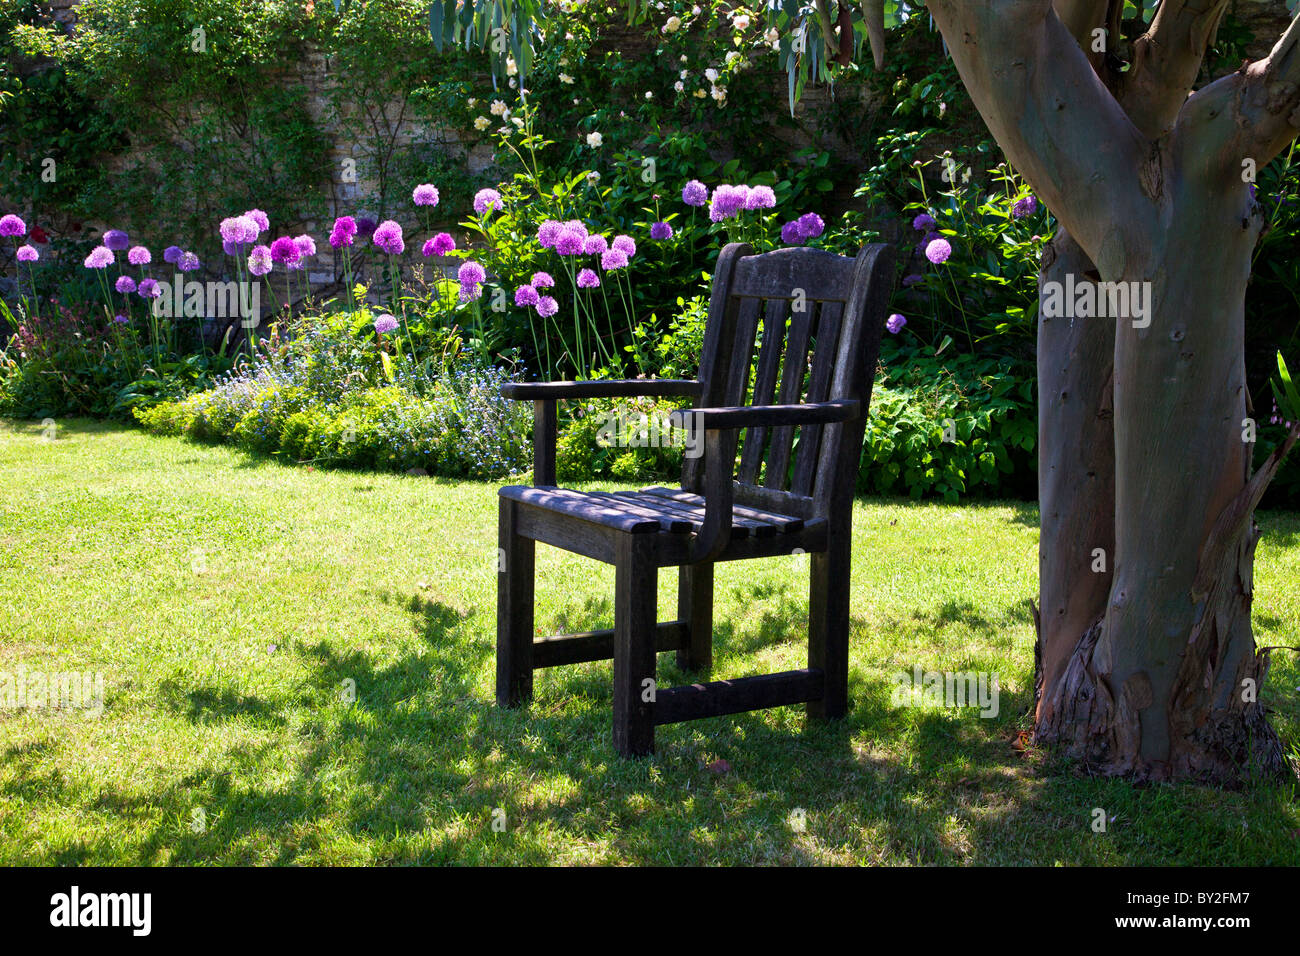 A Wooden Seat In A Shady Corner Under A Tree In An English